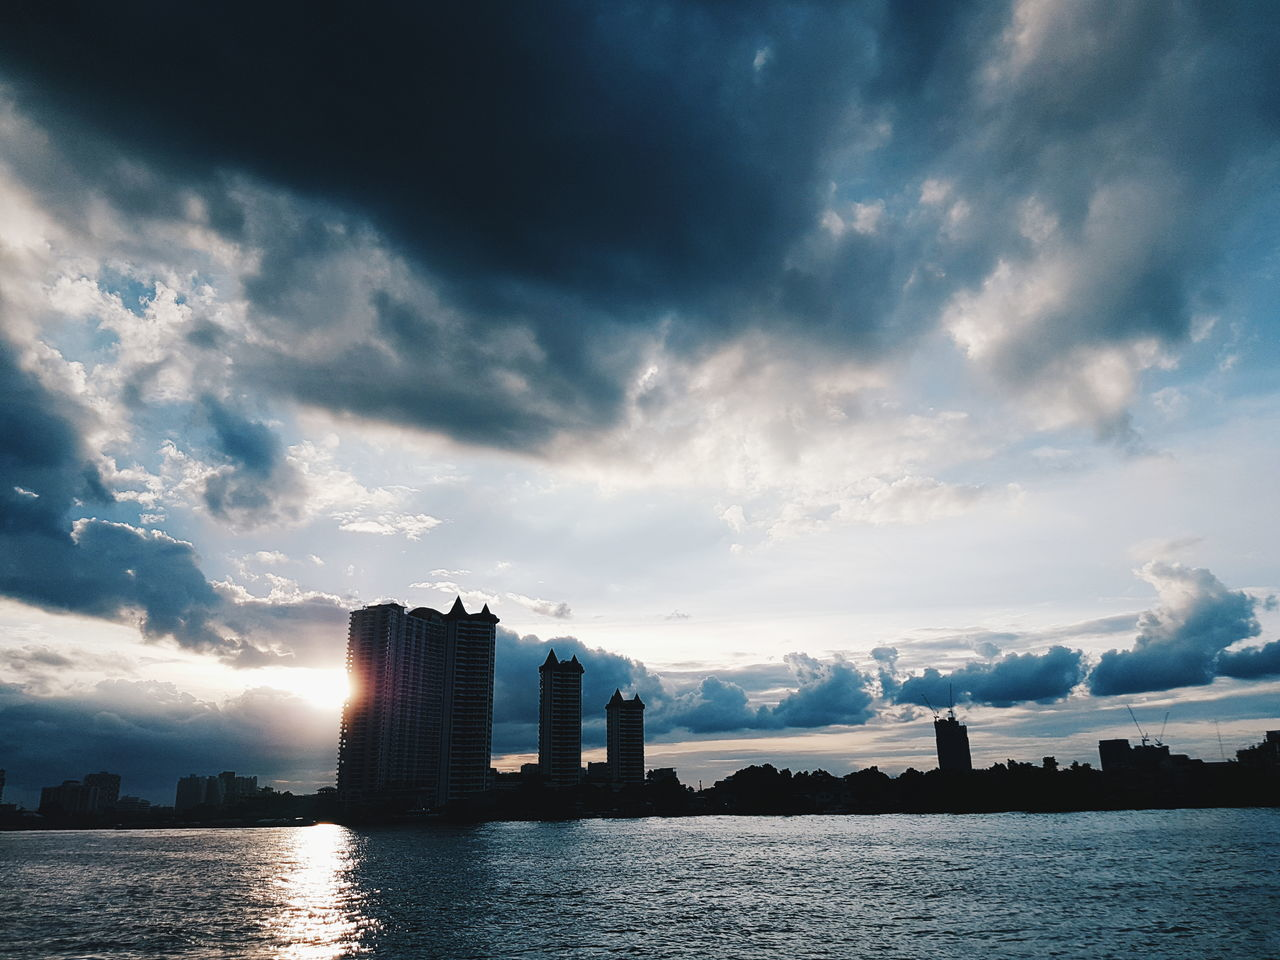 architecture, sky, built structure, cloud - sky, building exterior, water, skyscraper, city, modern, waterfront, outdoors, river, urban skyline, sunset, travel destinations, no people, cityscape, nature, scenics, day, beauty in nature